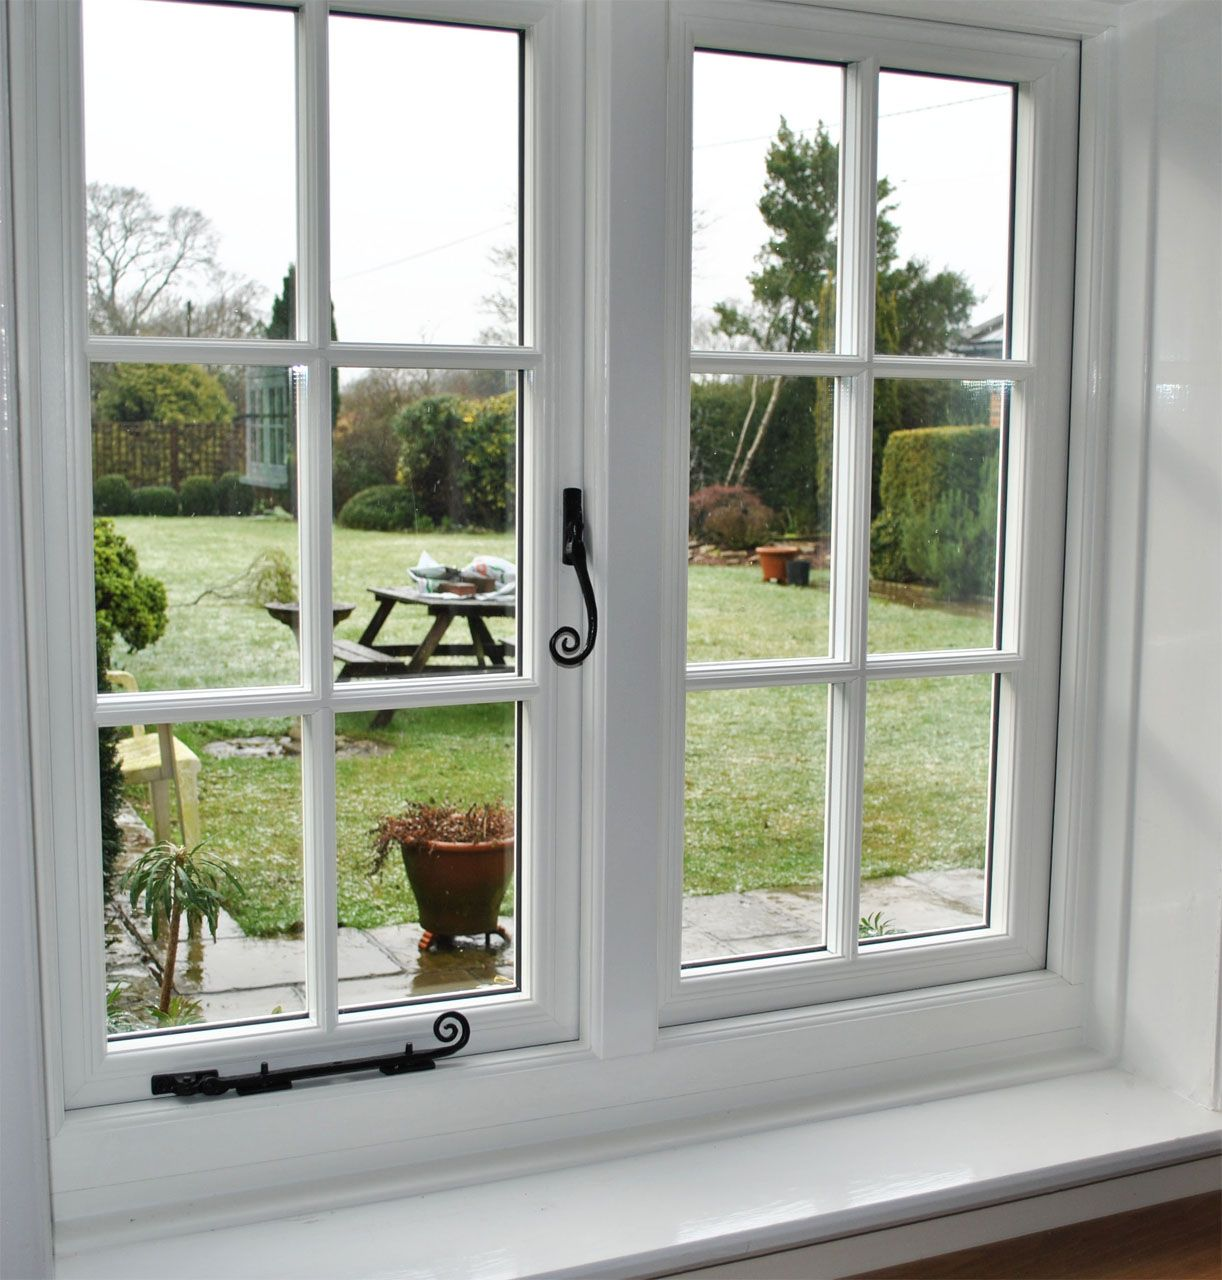 Cottage Windows Upvc Google Search House Windows Cottage Windows Upvc Windows